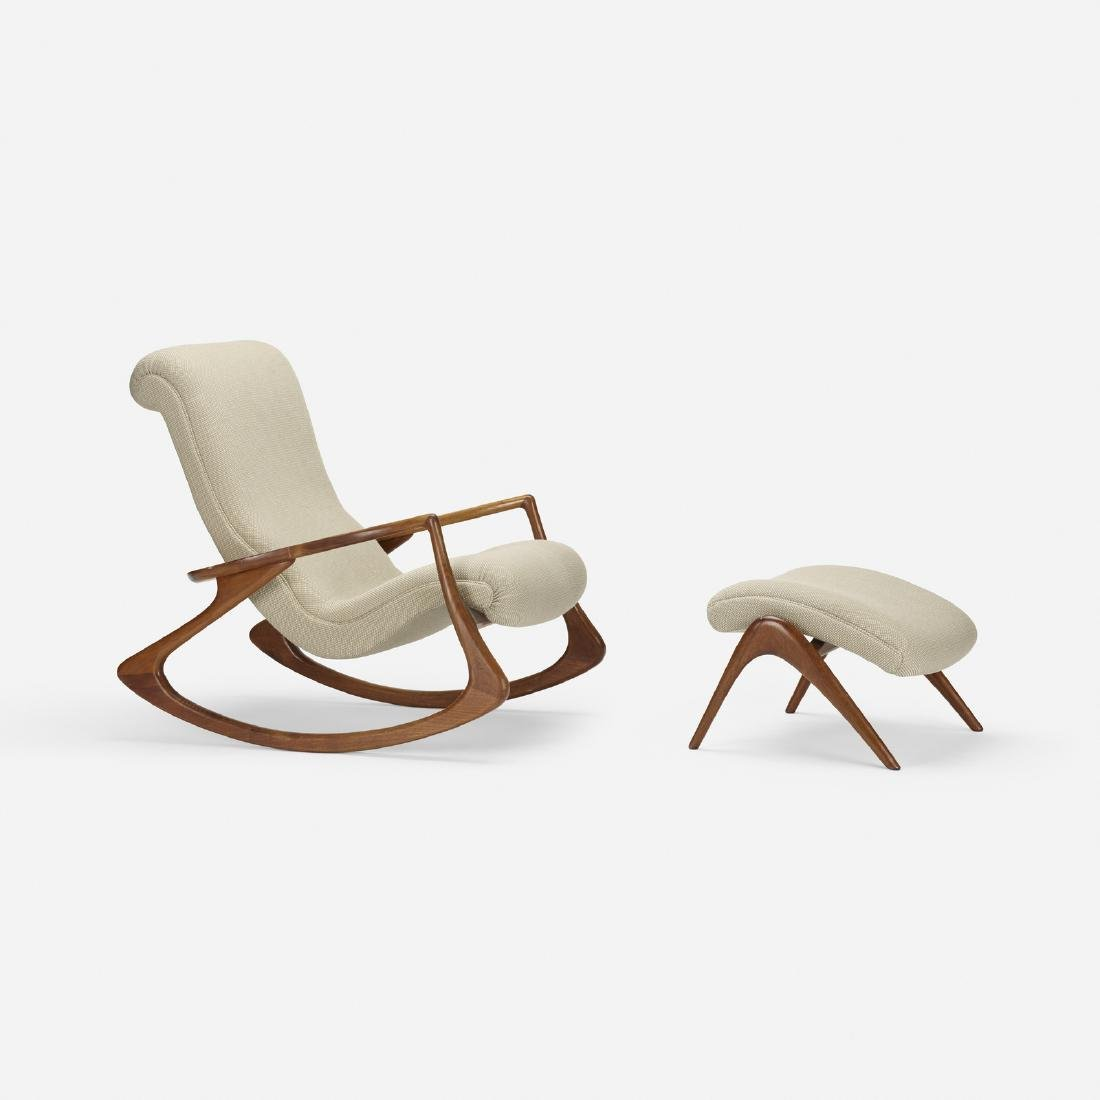 Vladimir Kagan, Sculpted rocking chair and ottoman